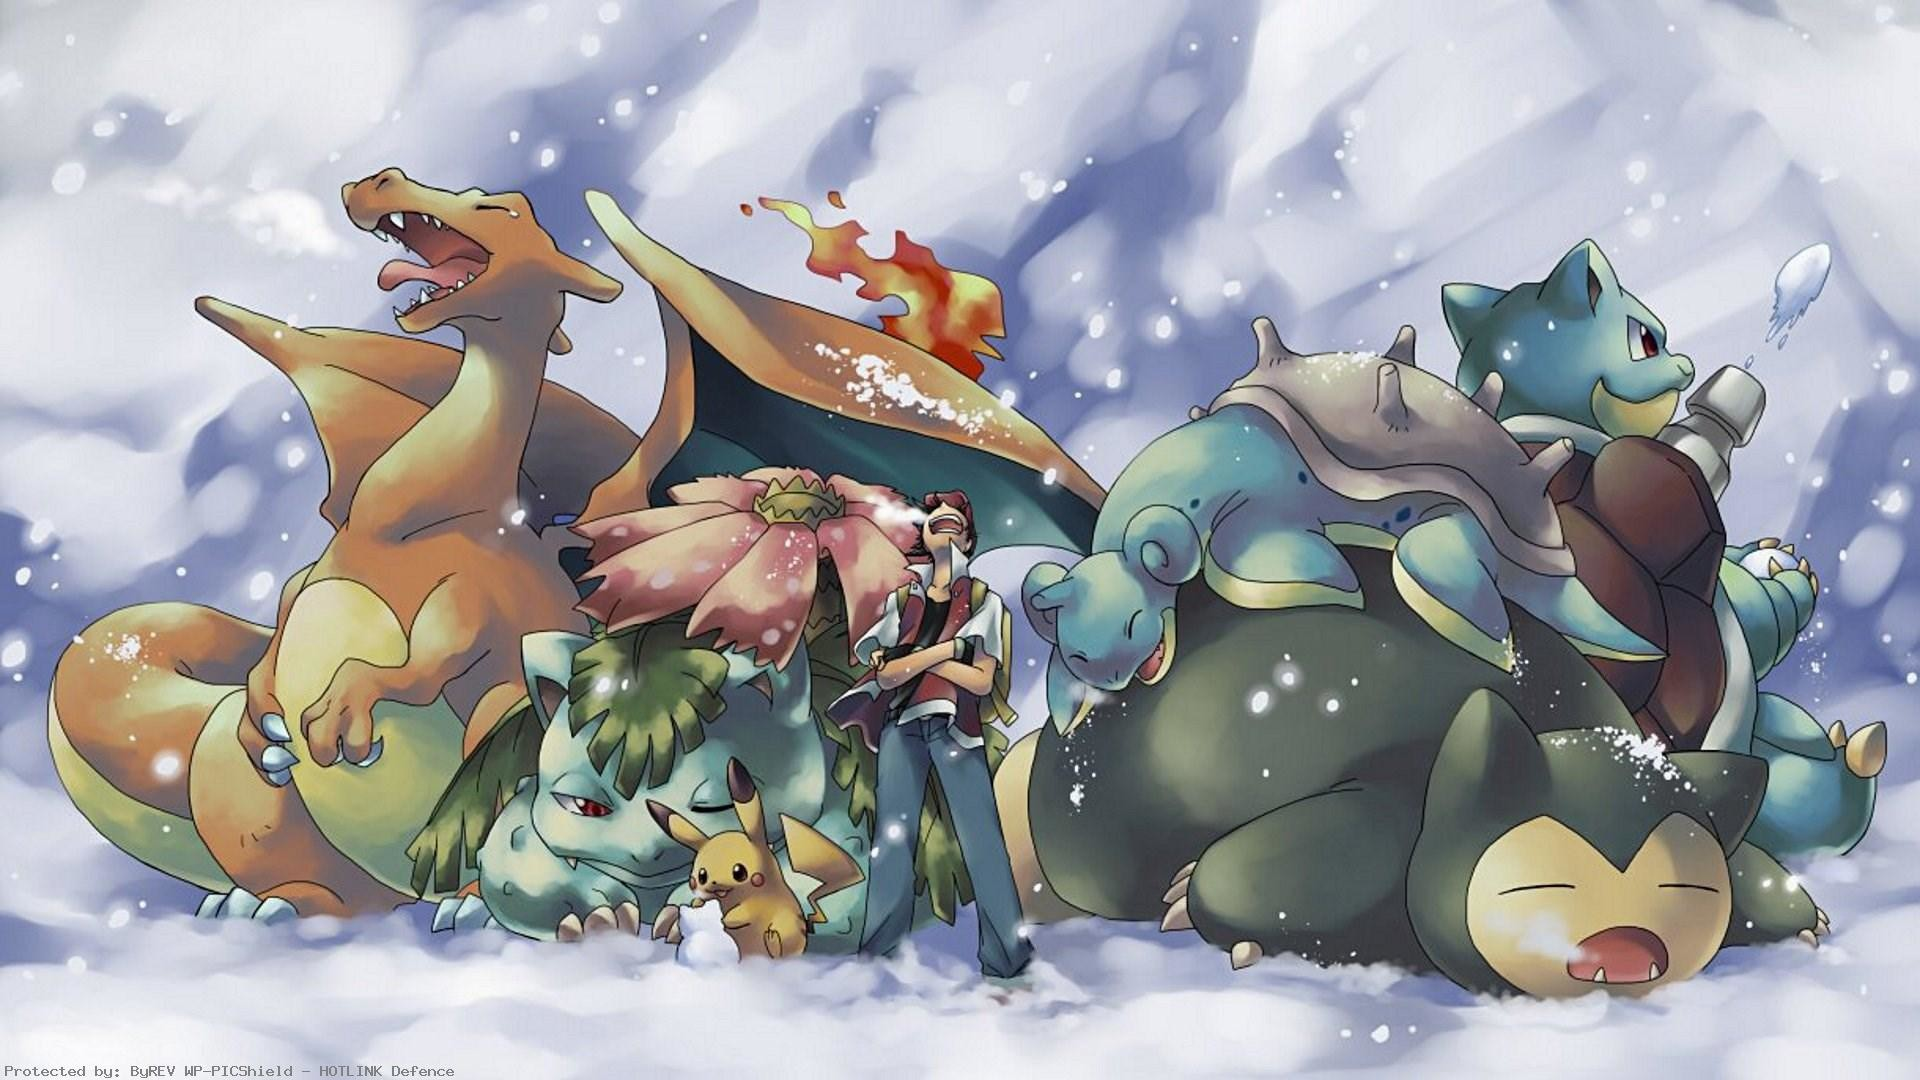 1920x1080 Anime Pokemon Wallpaper Background Hd Wallpapers Anime Pokemon Wallpaper Widescreen Hd 1080p .